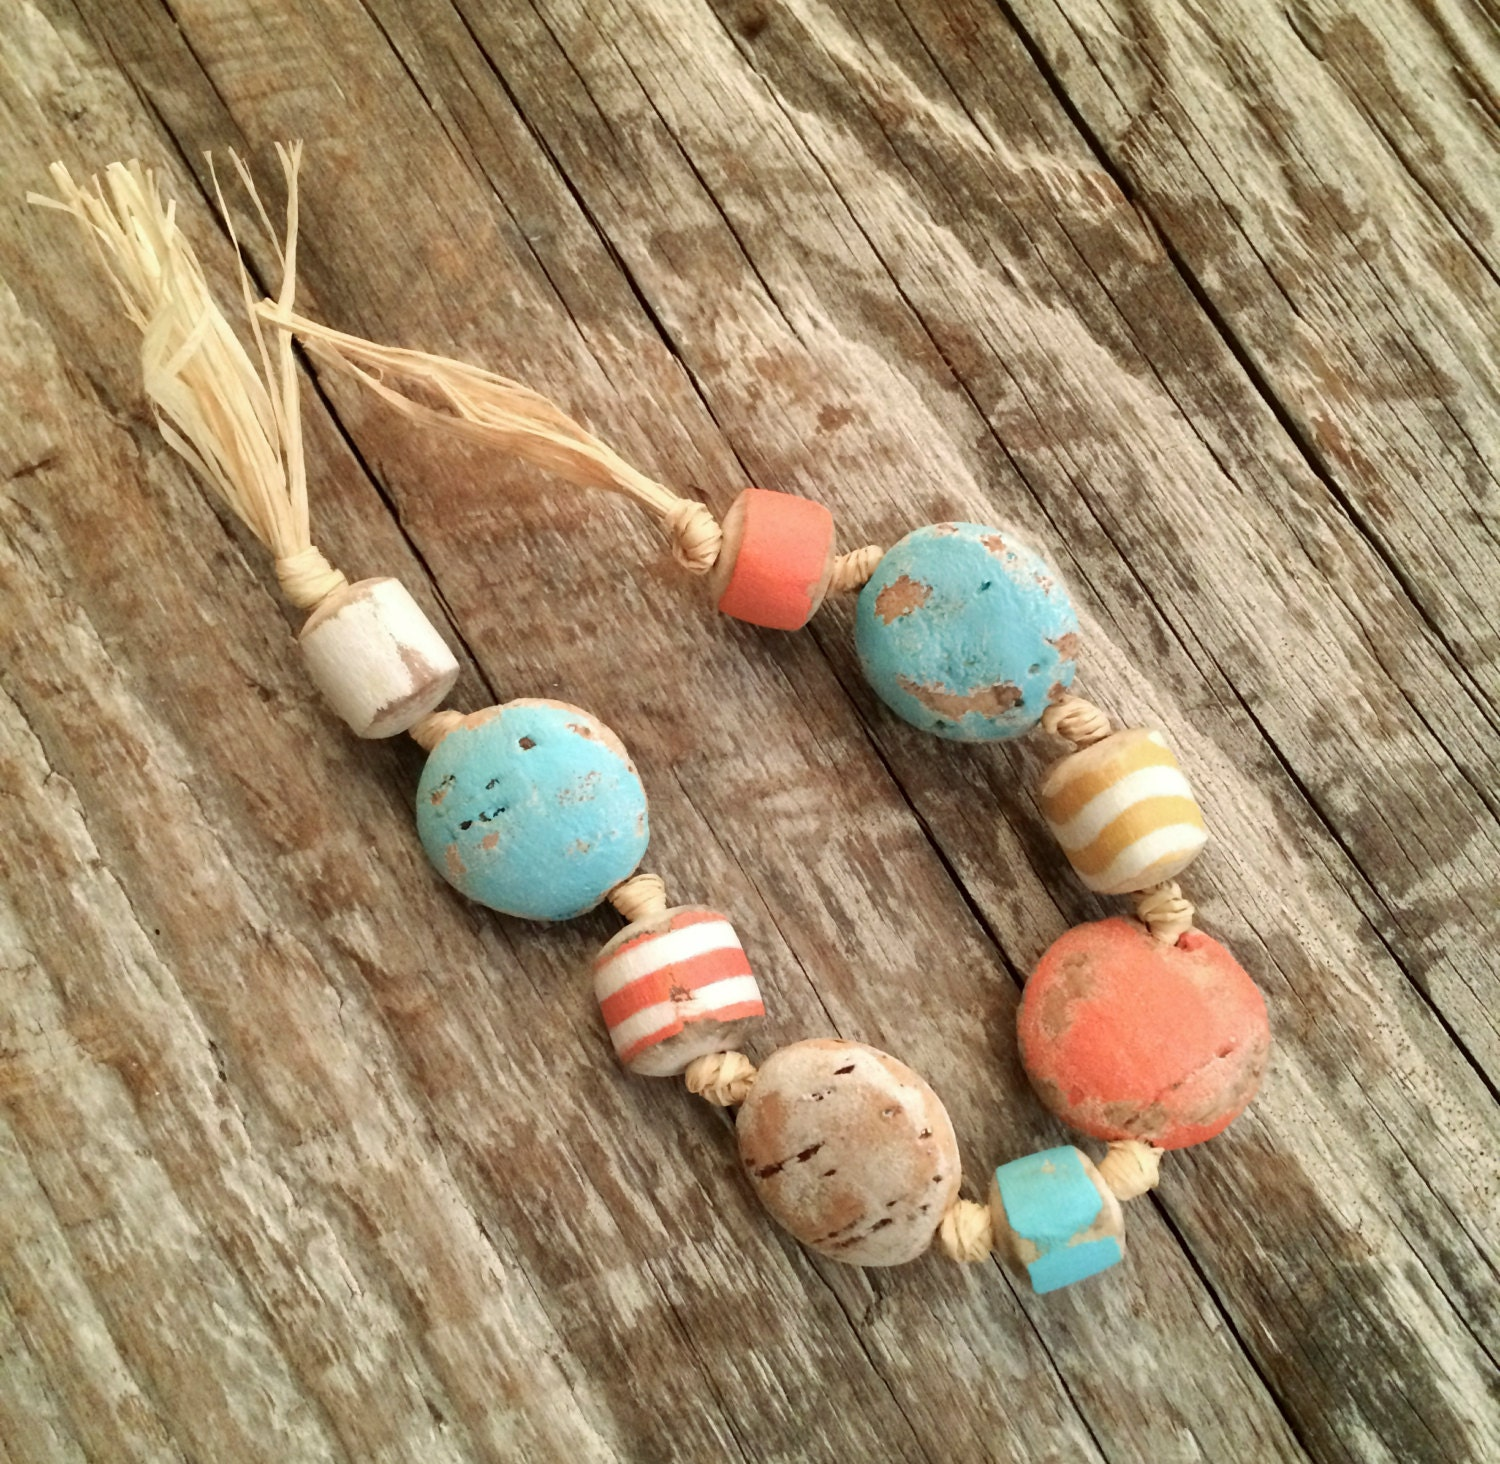 Cork Beads: Driftwood And Cork Beads Painted Driftwood Beads Rustic